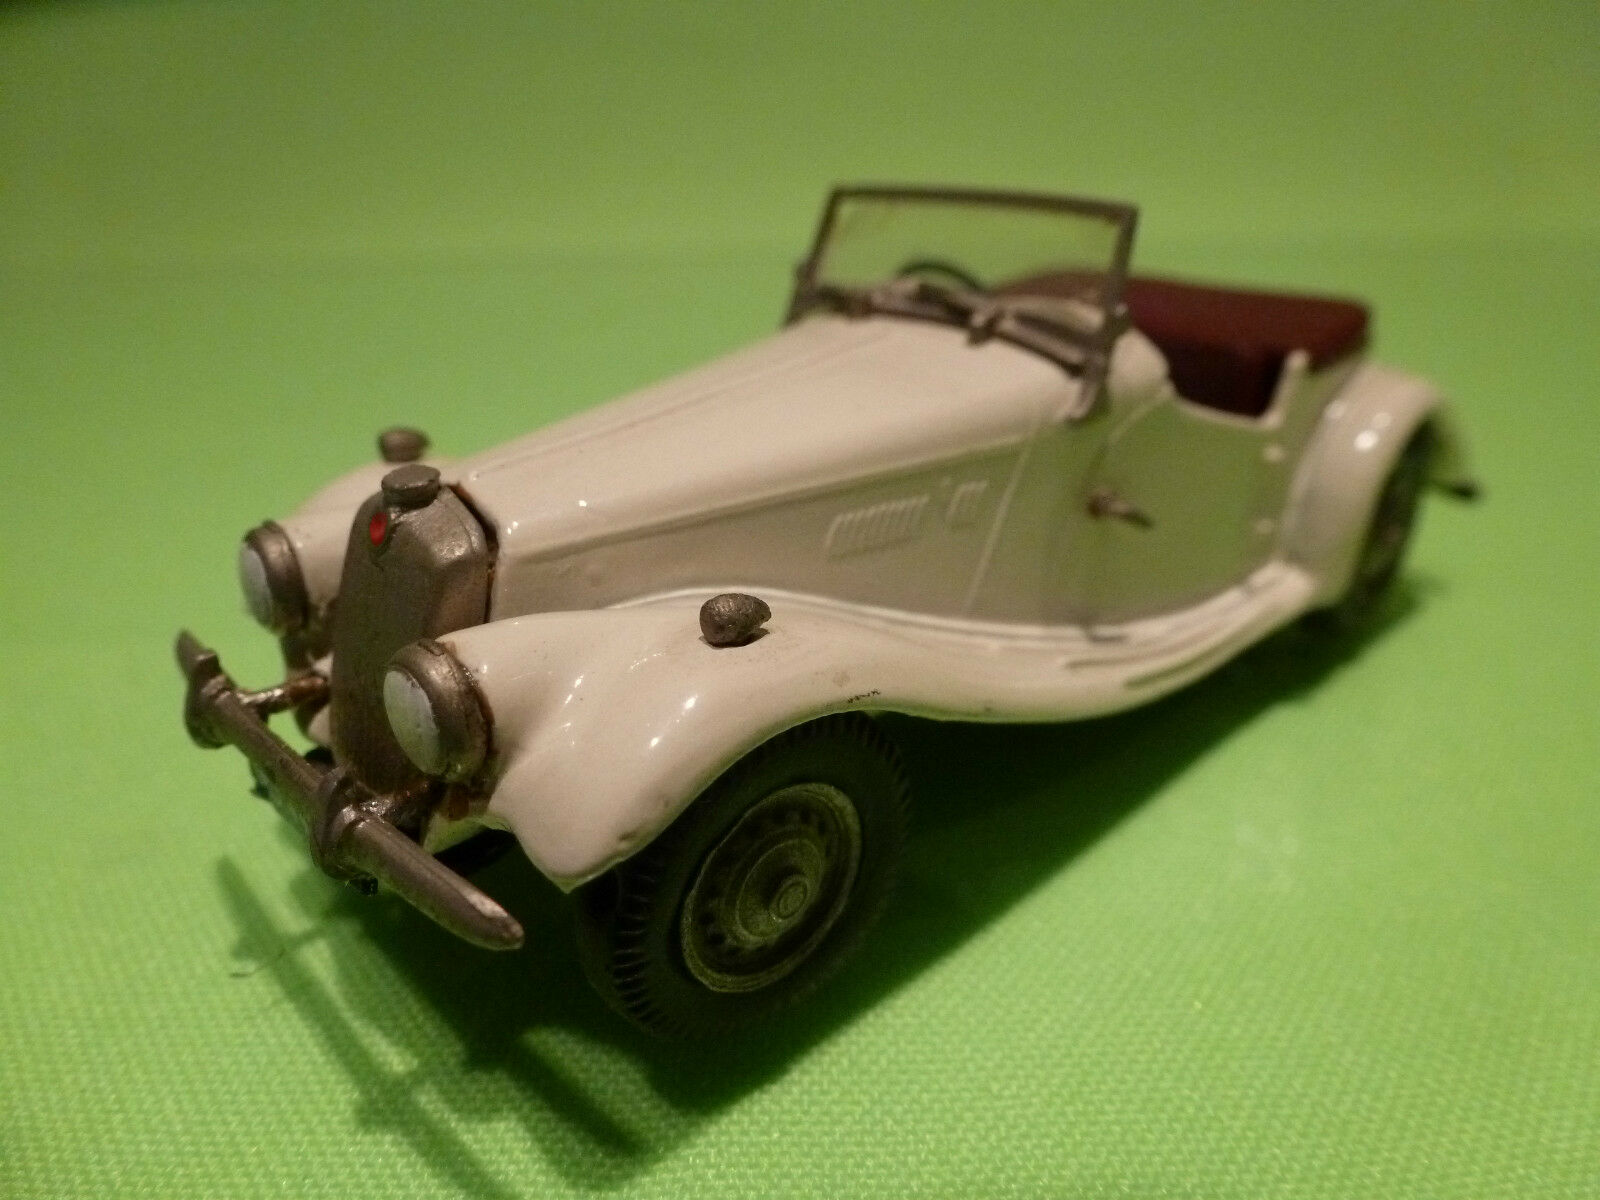 WESTERN MODELS 1 43 MG TF  1953  - RARE SELTEN  - GOOD CONDITION